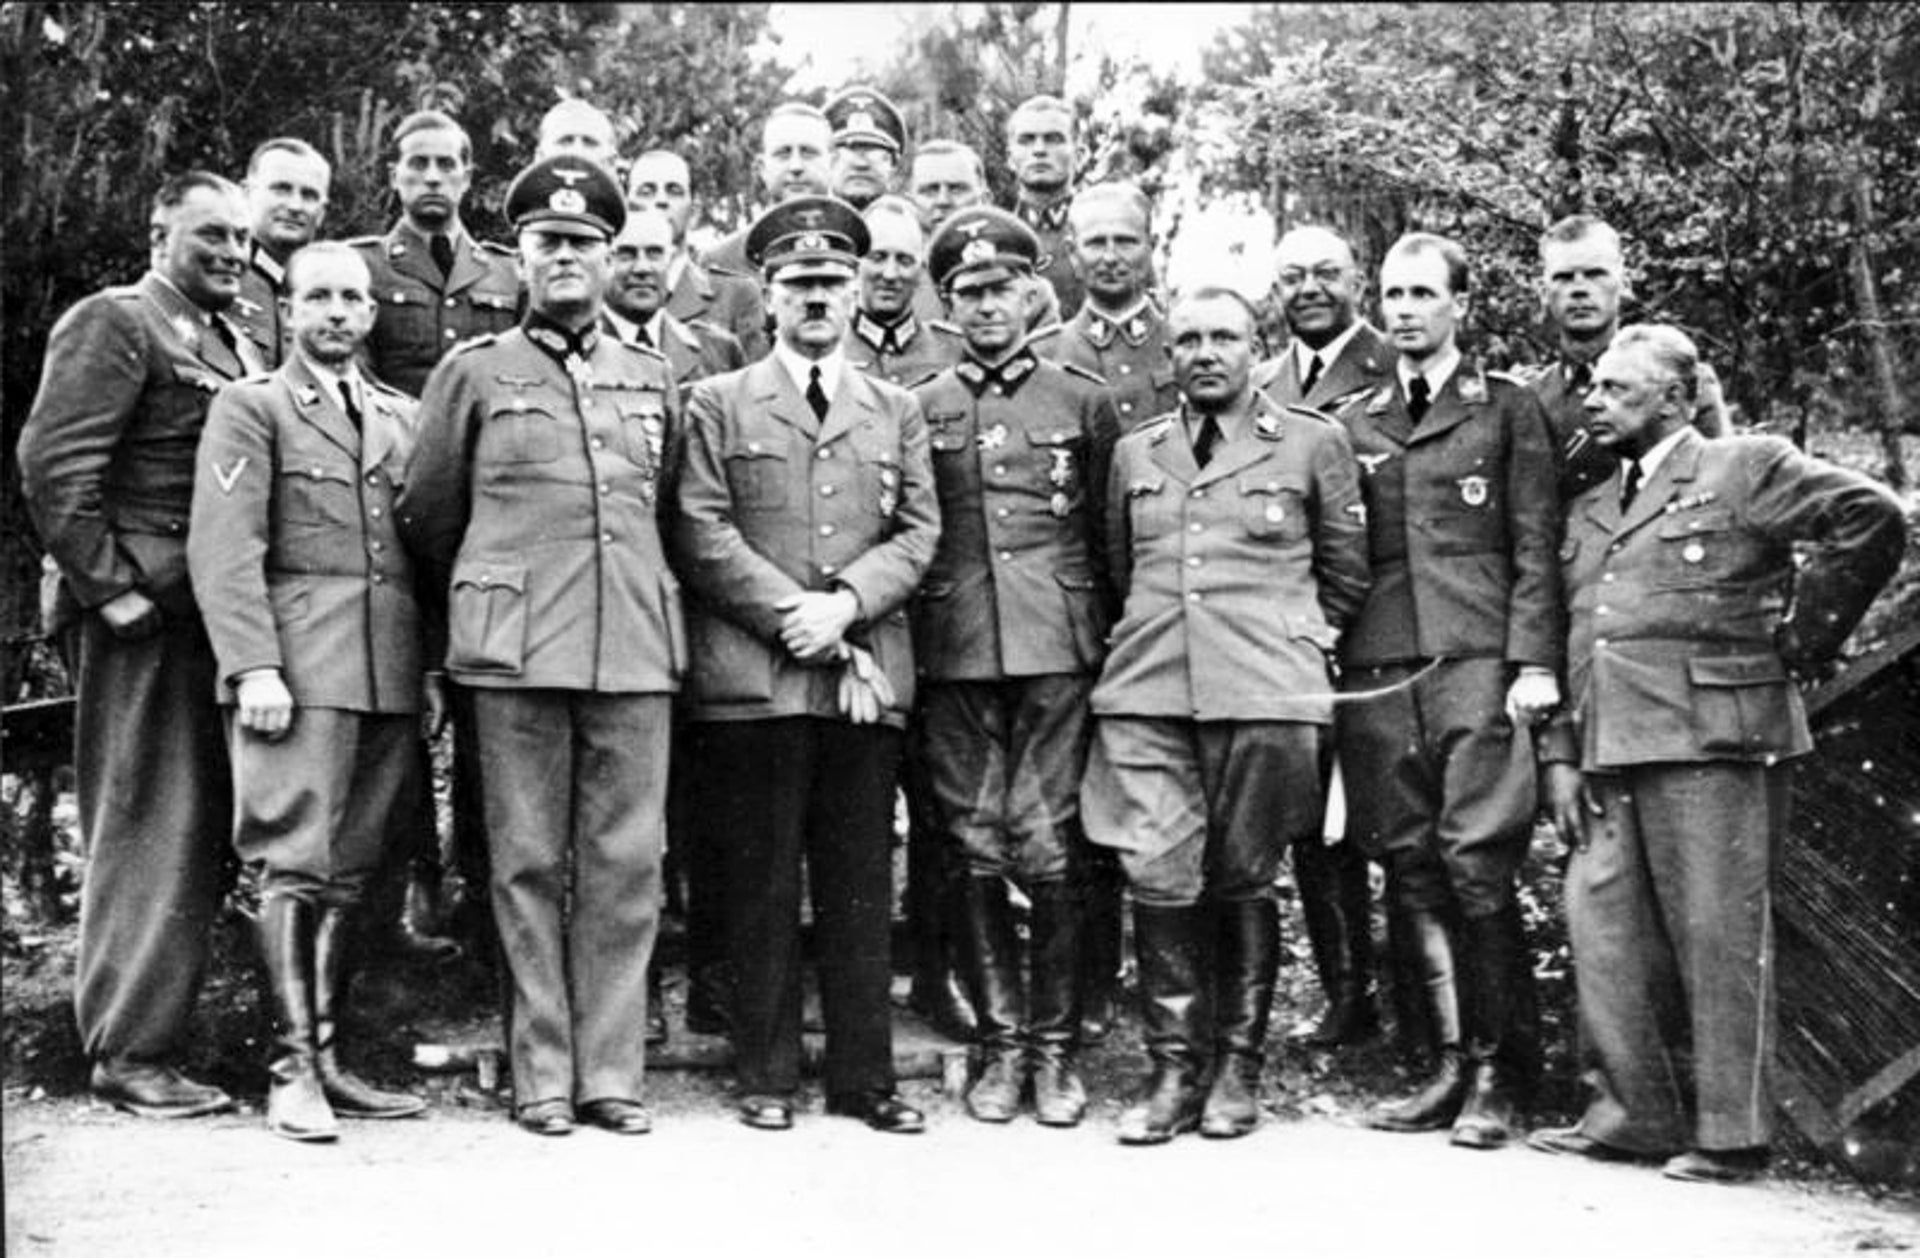 Adolf Hitler and his staff in June 1940. His private doctor, Theodor Morell, is fourth from the right.